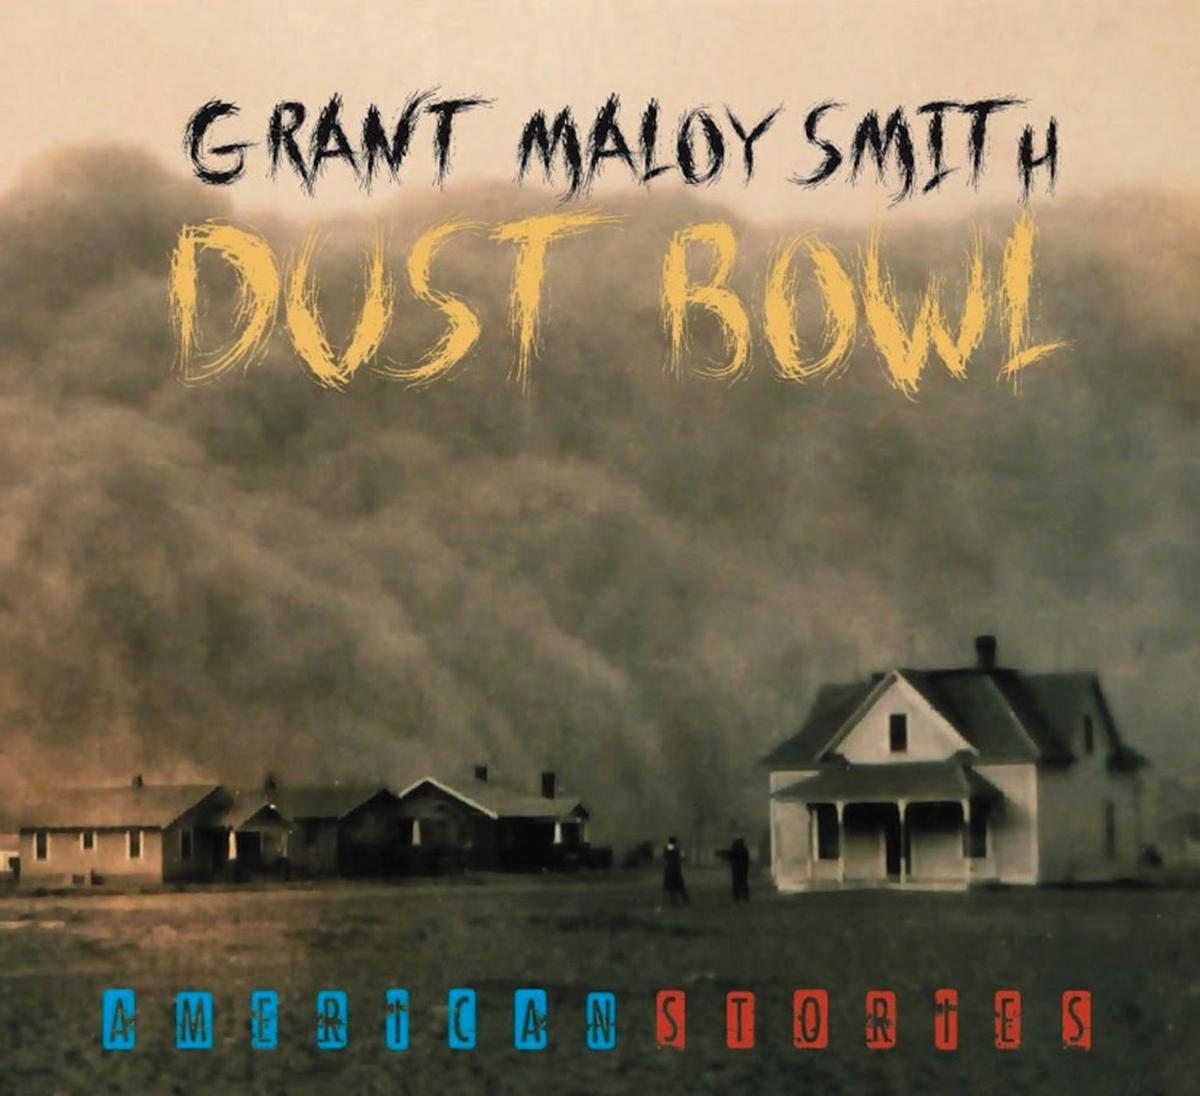 Grant Maloy Smith_DustBowl_cover